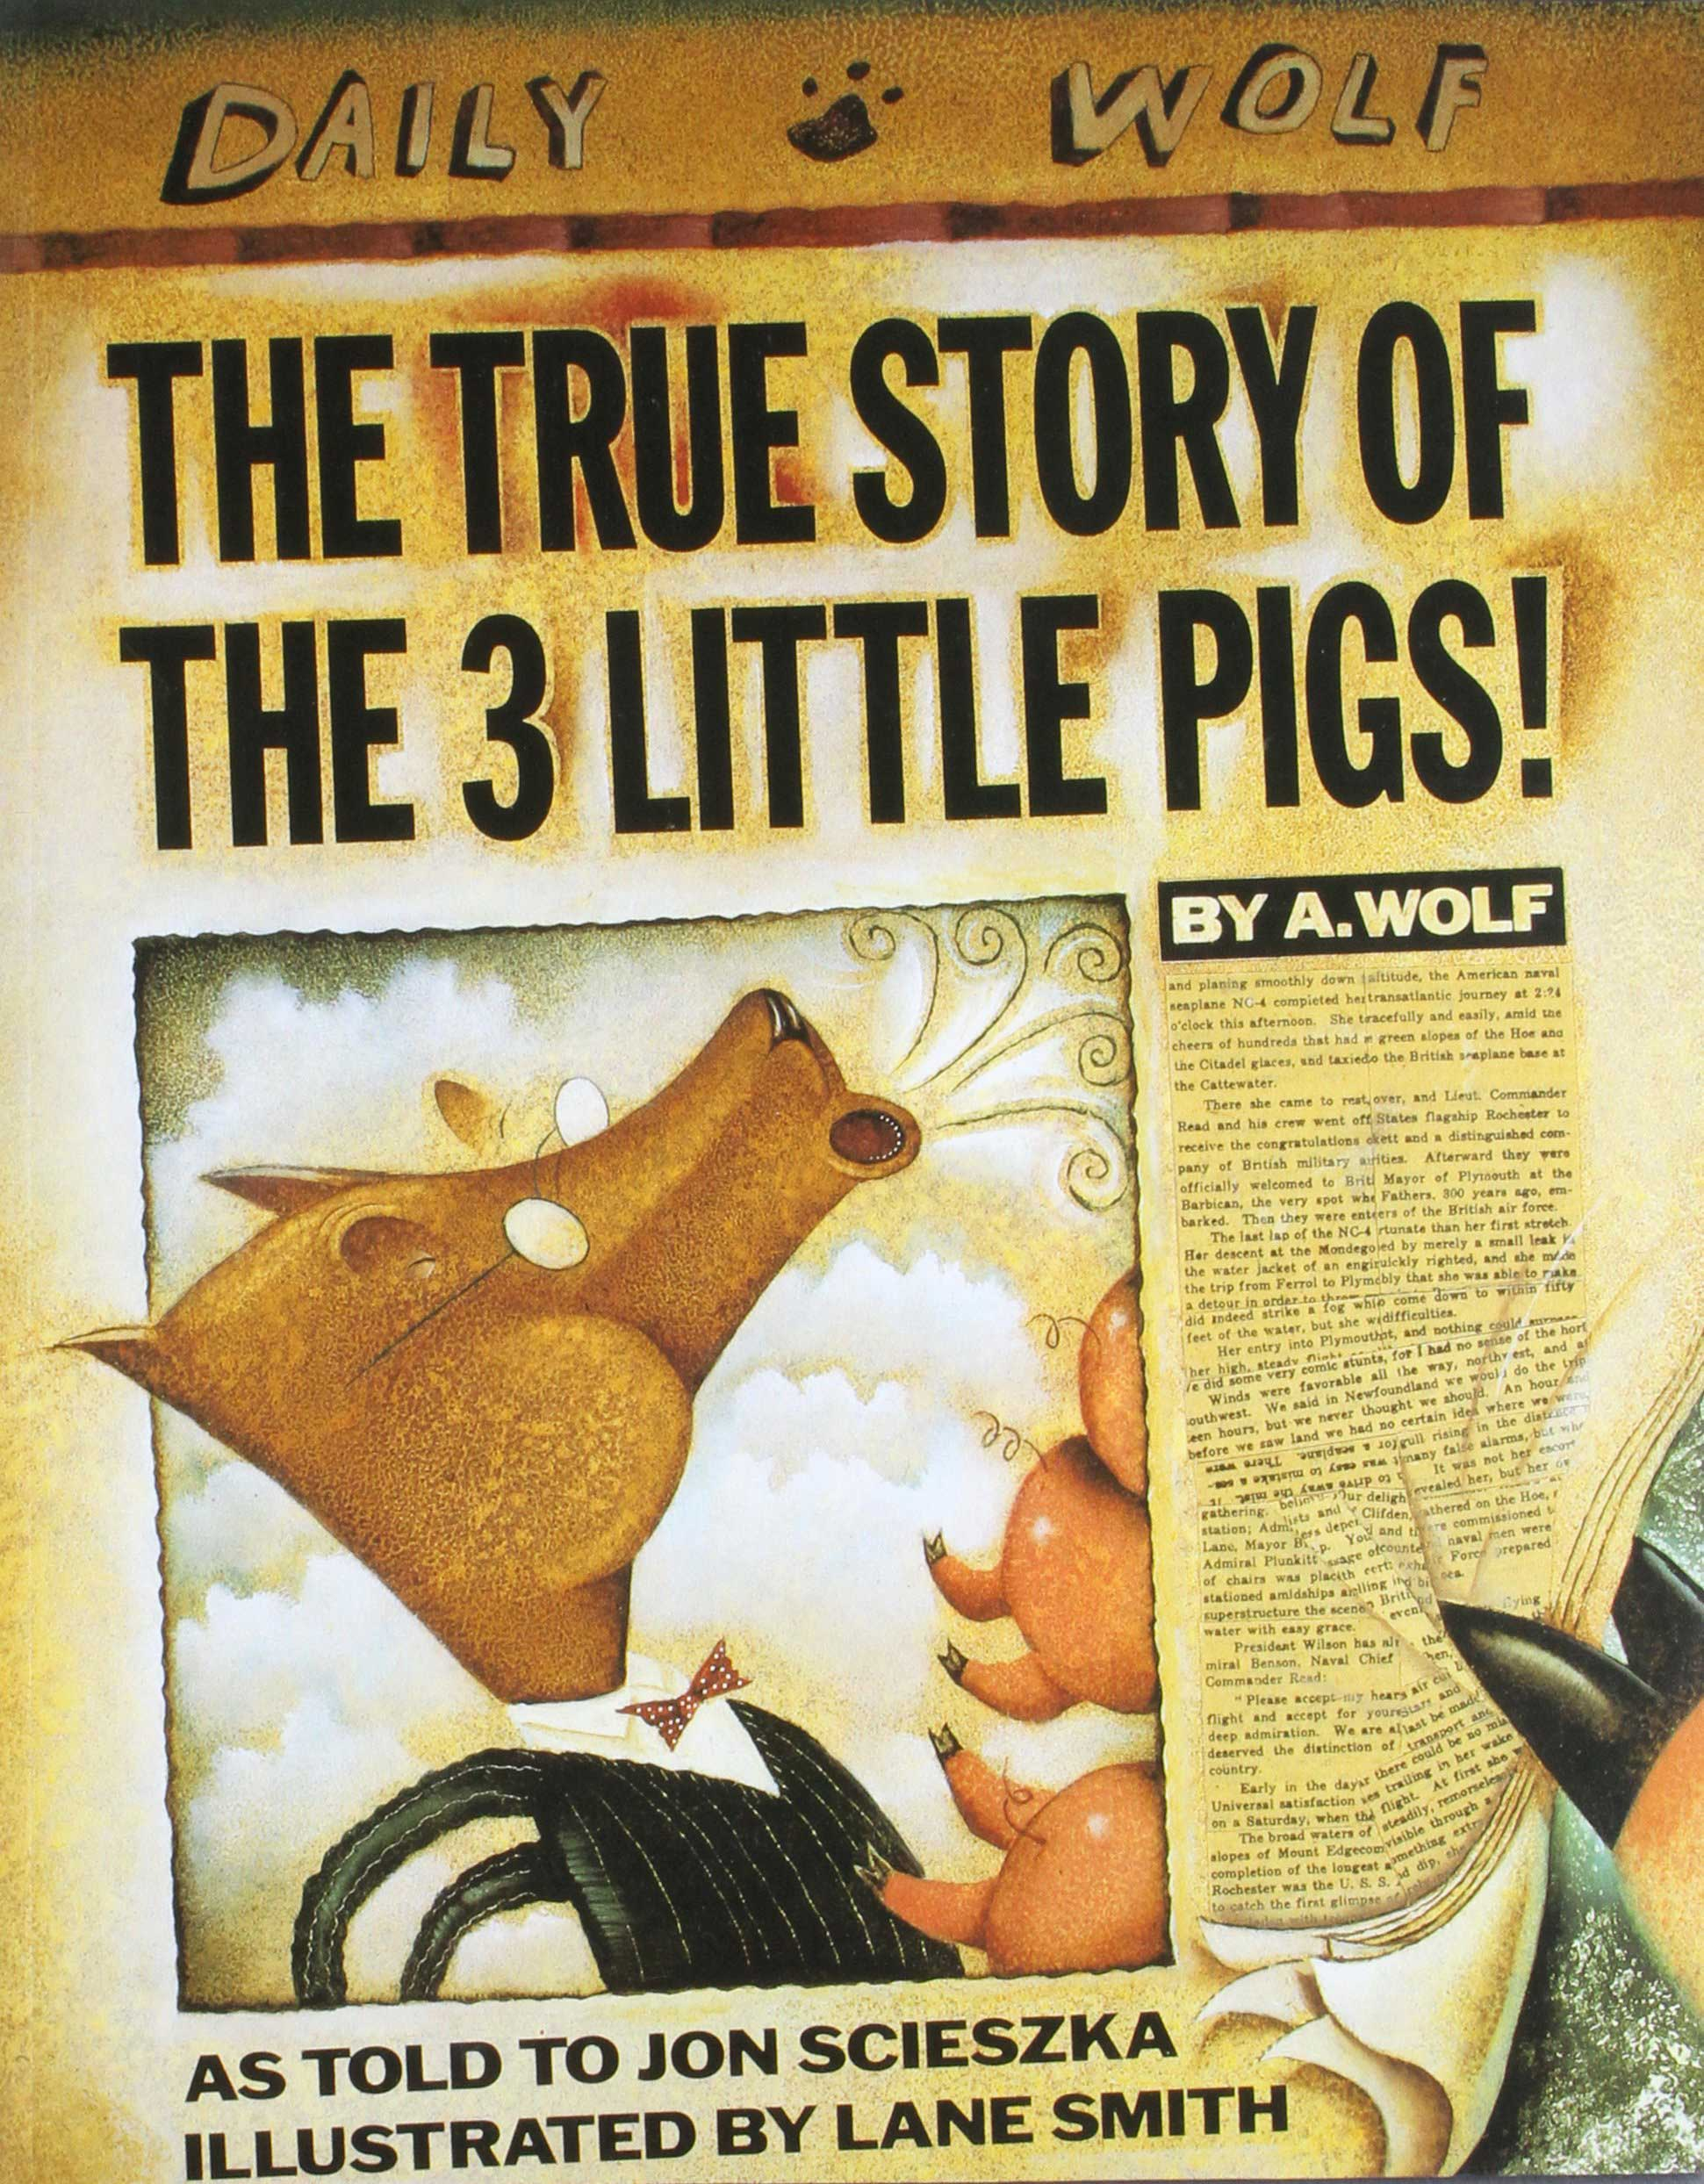 The True Story of the Three Little Pigs, by Jon Scieszka, illustrations by Lane Smith.                                                                                                                            This ironic, witty book, which revises the story of the pigs as an exculpatory memoir by the wolf—who claims he's not so big and bad at all!—is a welcome corrective to more saccharine tales. It also introduces young readers to the notion of dueling perspectives.                                                                                                                            Buy now: The True Story of the Three Little Pigs